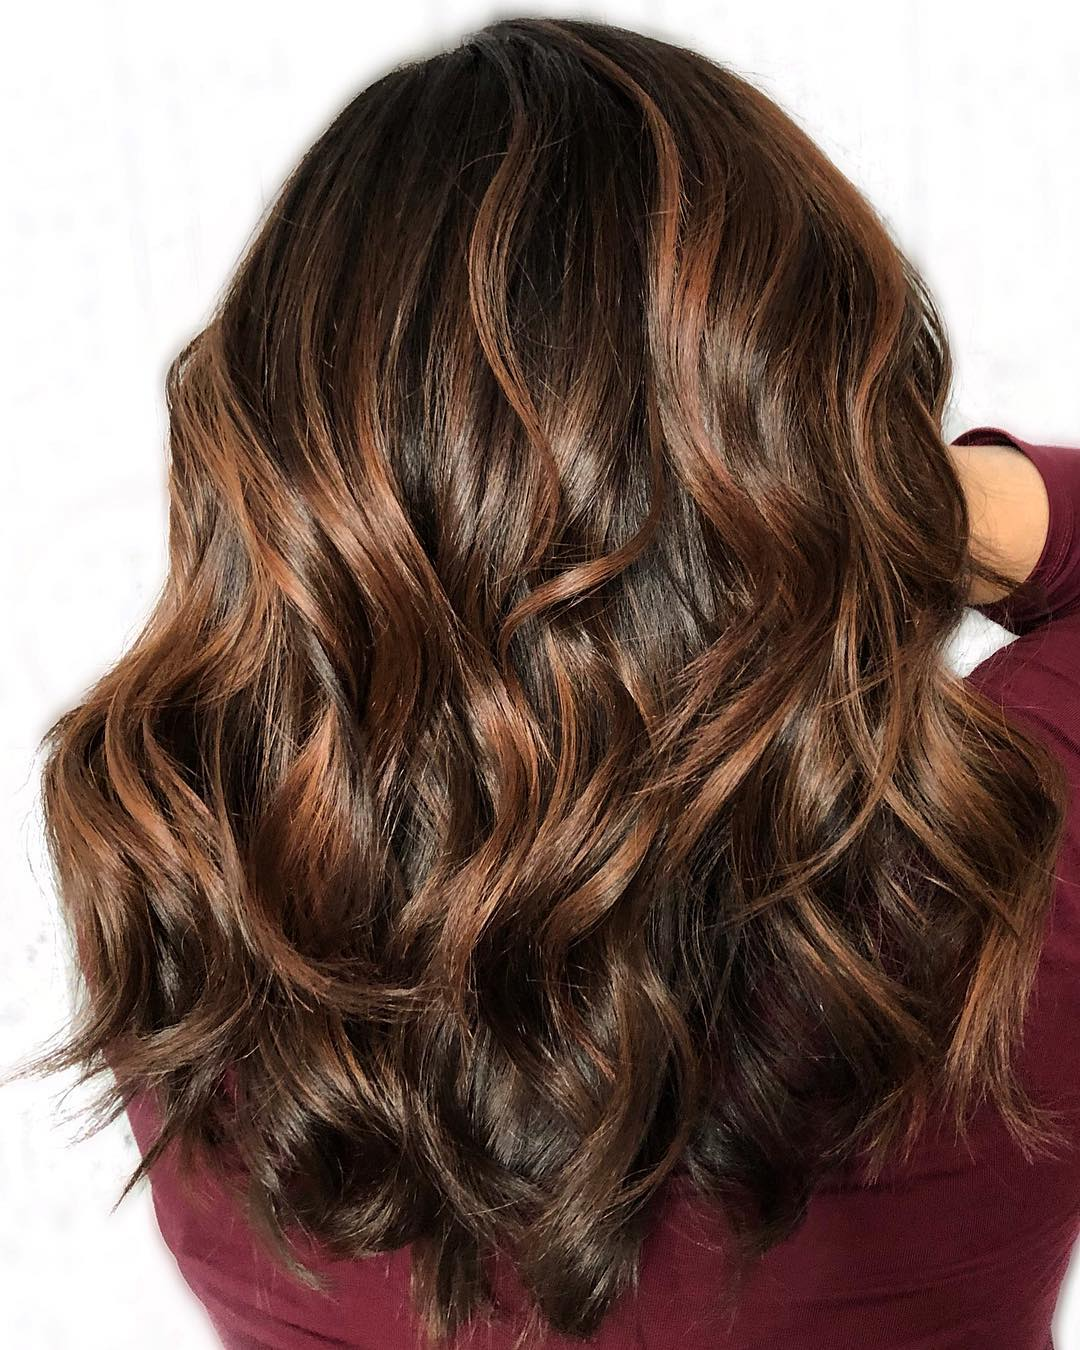 Dark Brown with Auburn Streaks